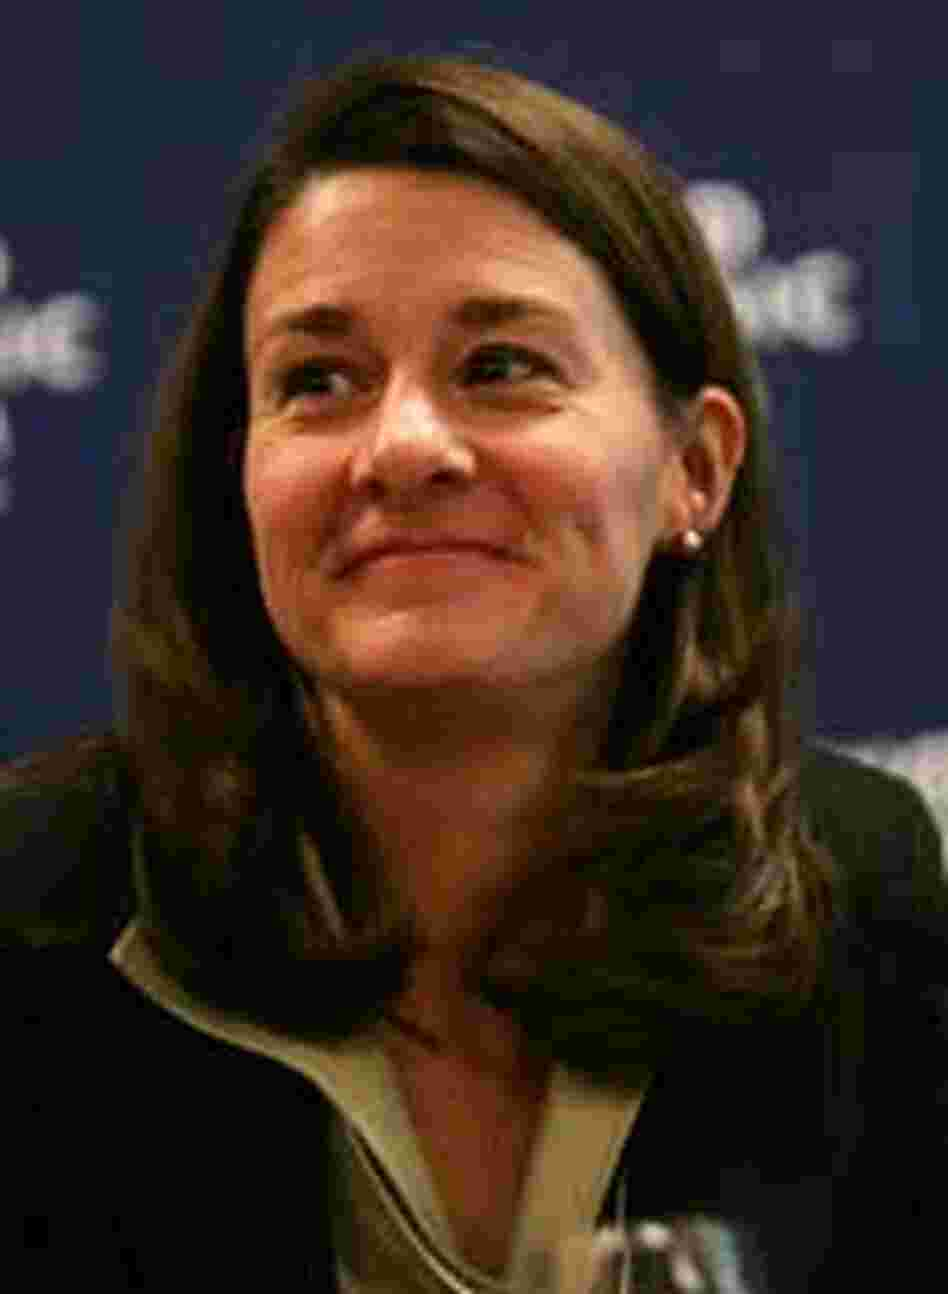 Melinda Gates attends a session at the World Economic Forum in January.